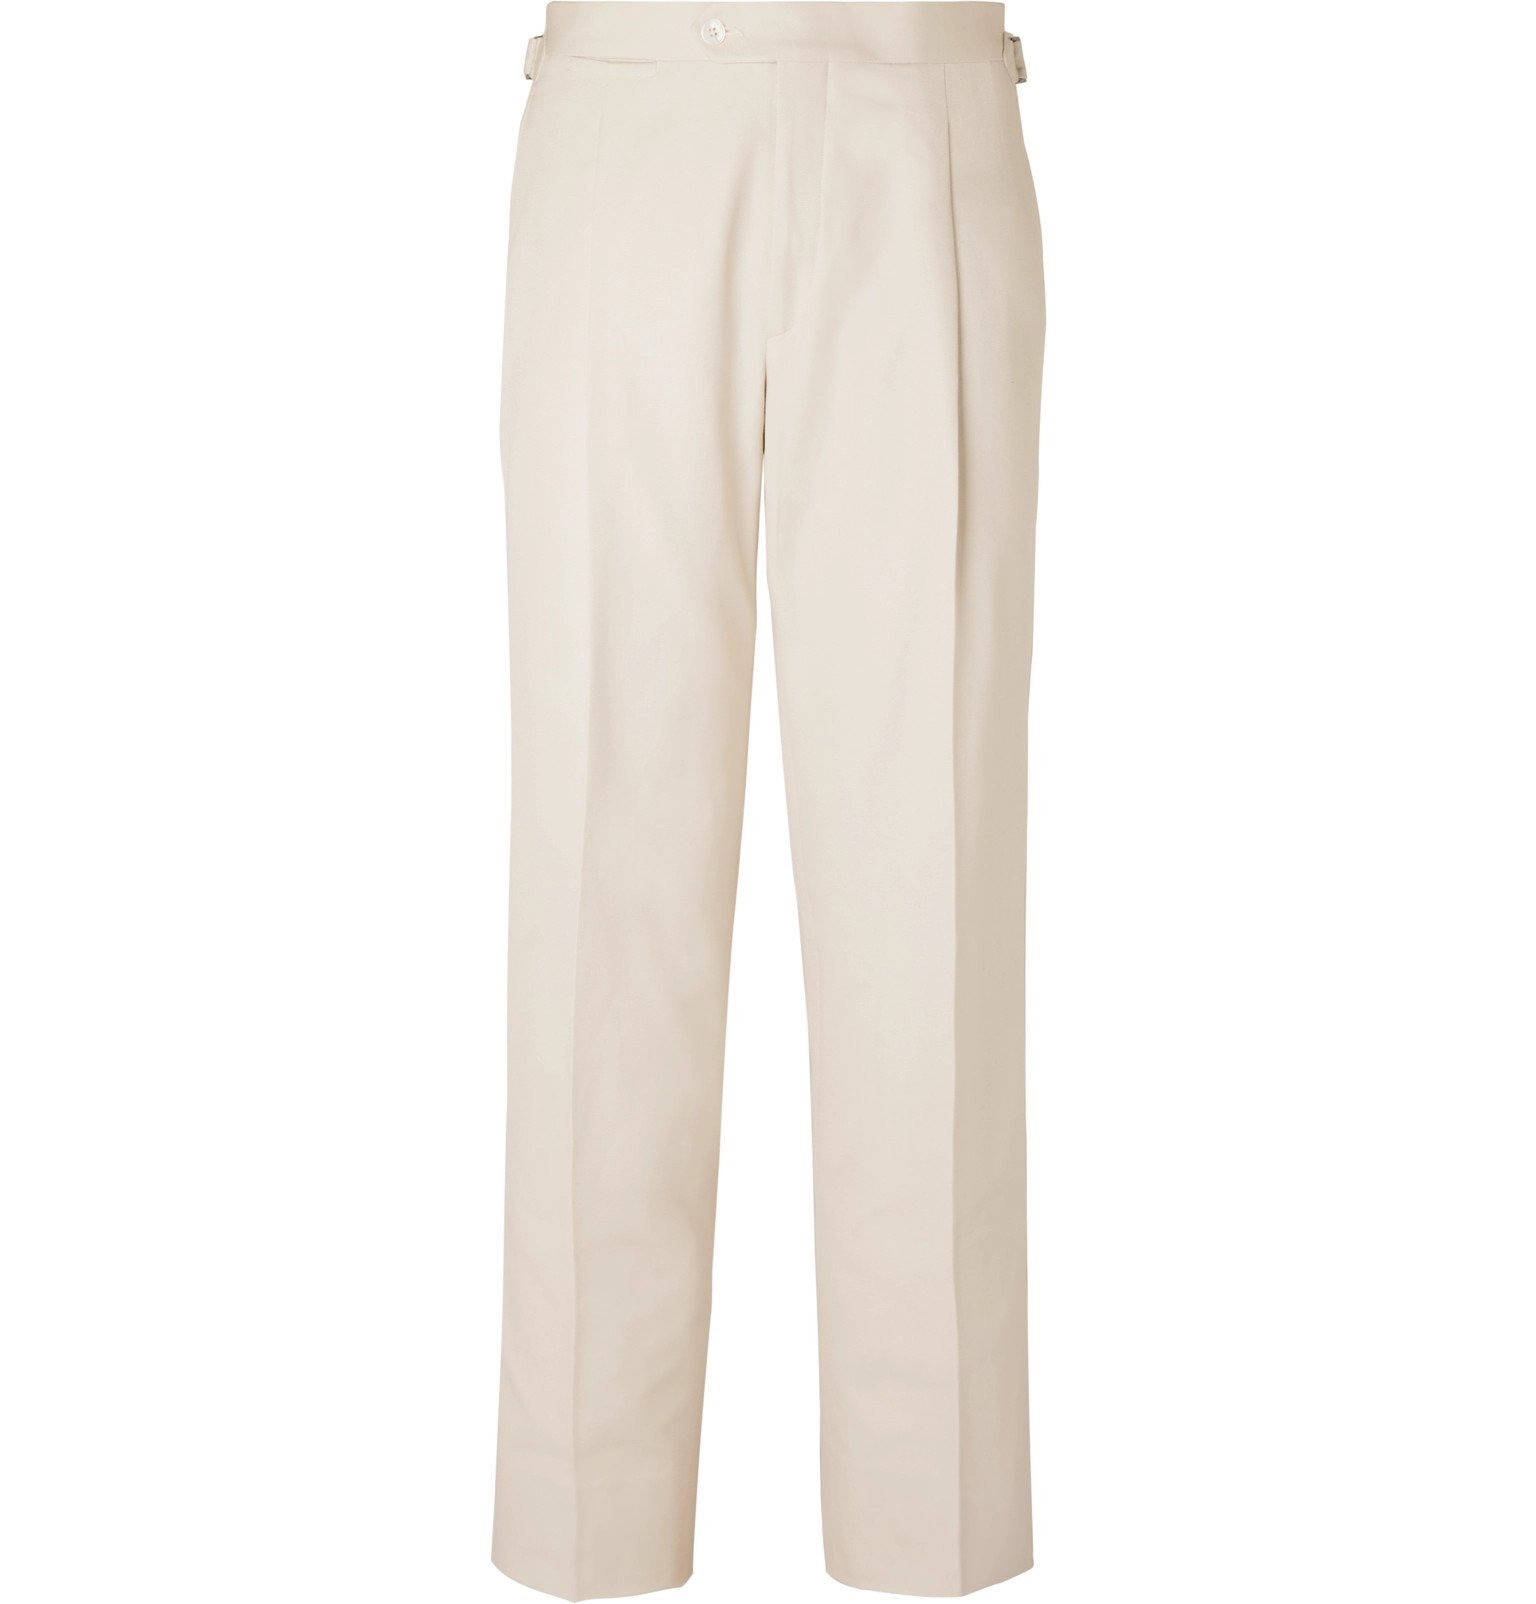 Saman Amel - Pleated Cotton Trousers - Neutrals